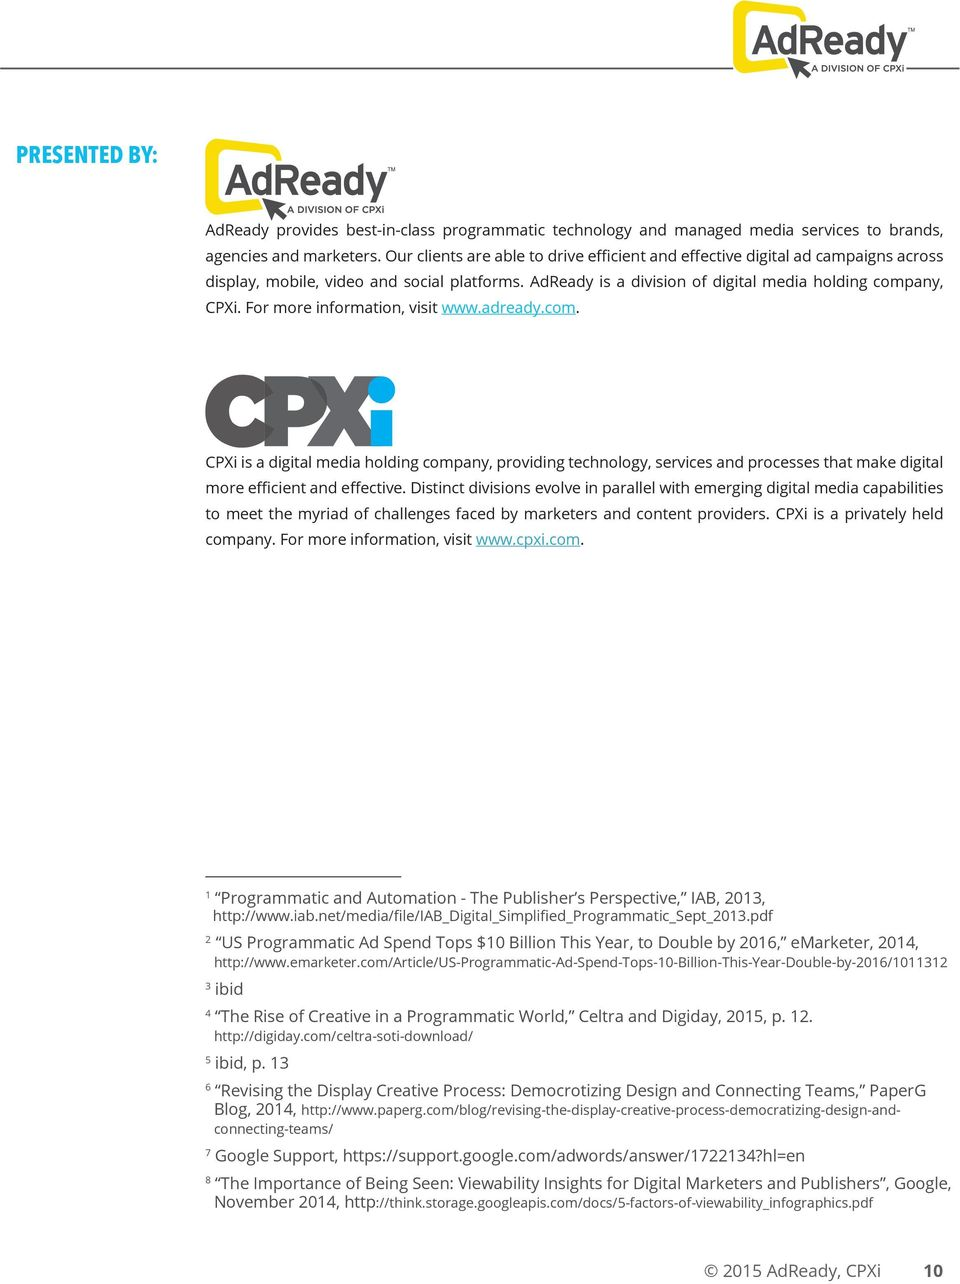 For more information, visit www.adready.com. CPXi is a digital media holding company, providing technology, services and processes that make digital more efficient and effective.